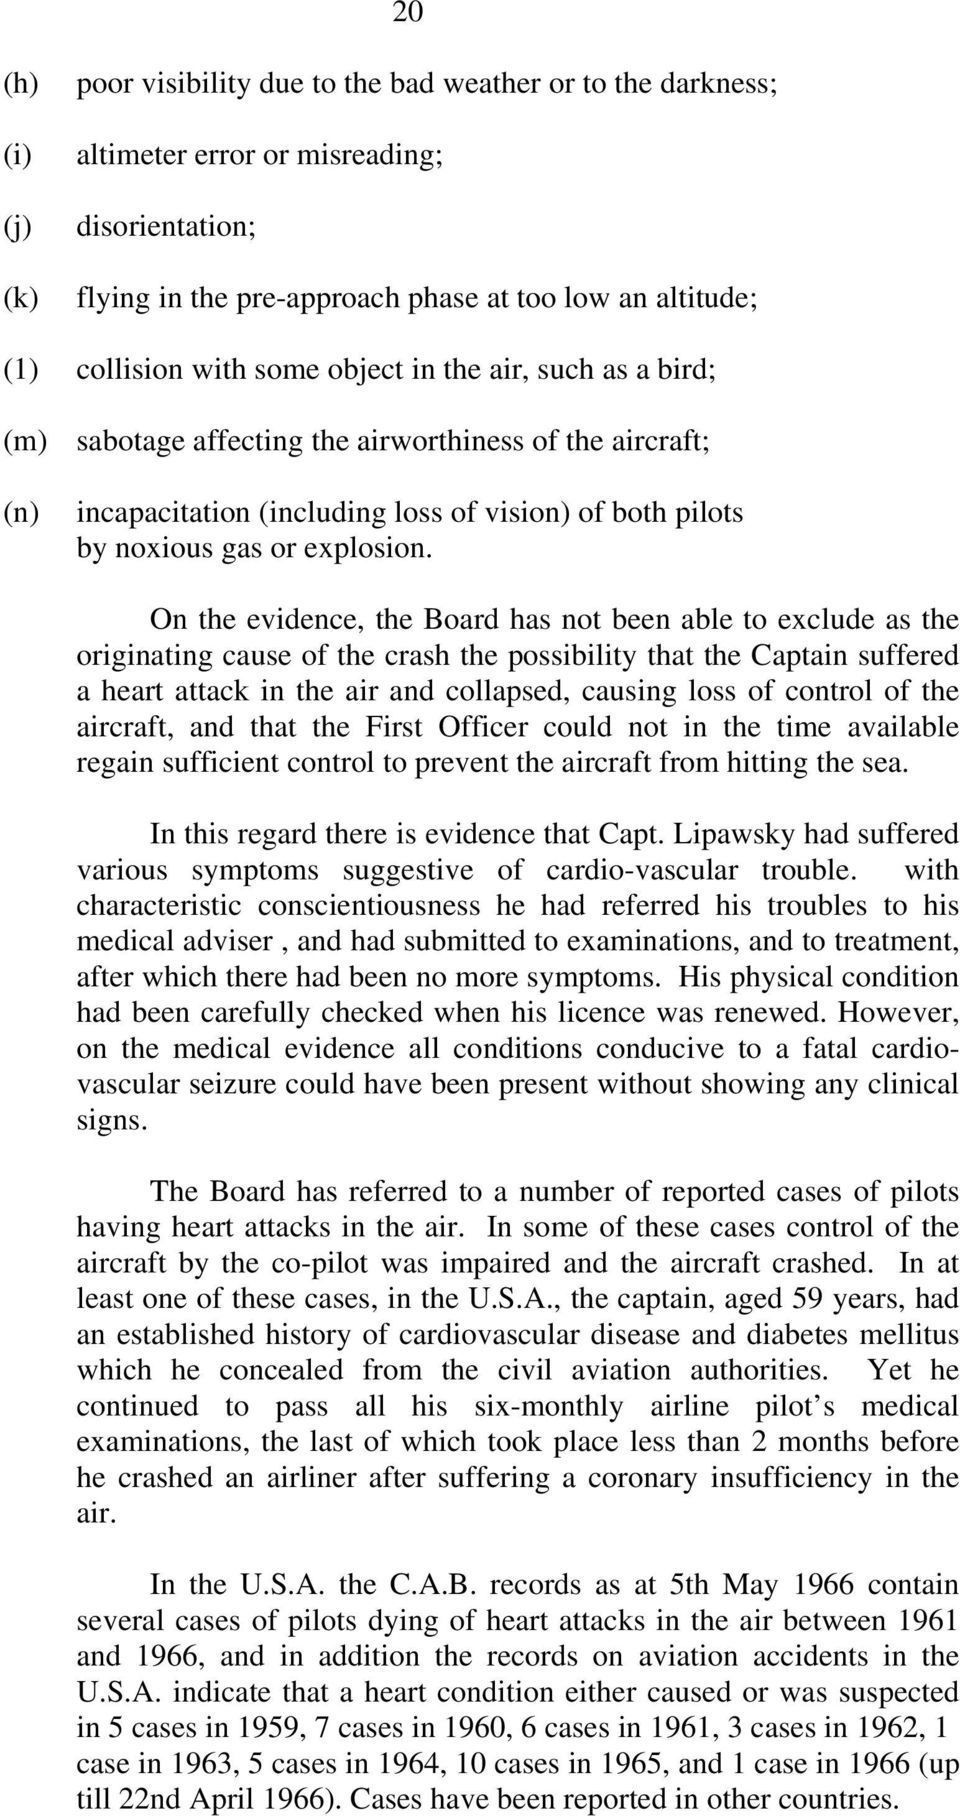 On the evidence, the Board has not been able to exclude as the originating cause of the crash the possibility that the Captain suffered a heart attack in the air and collapsed, causing loss of